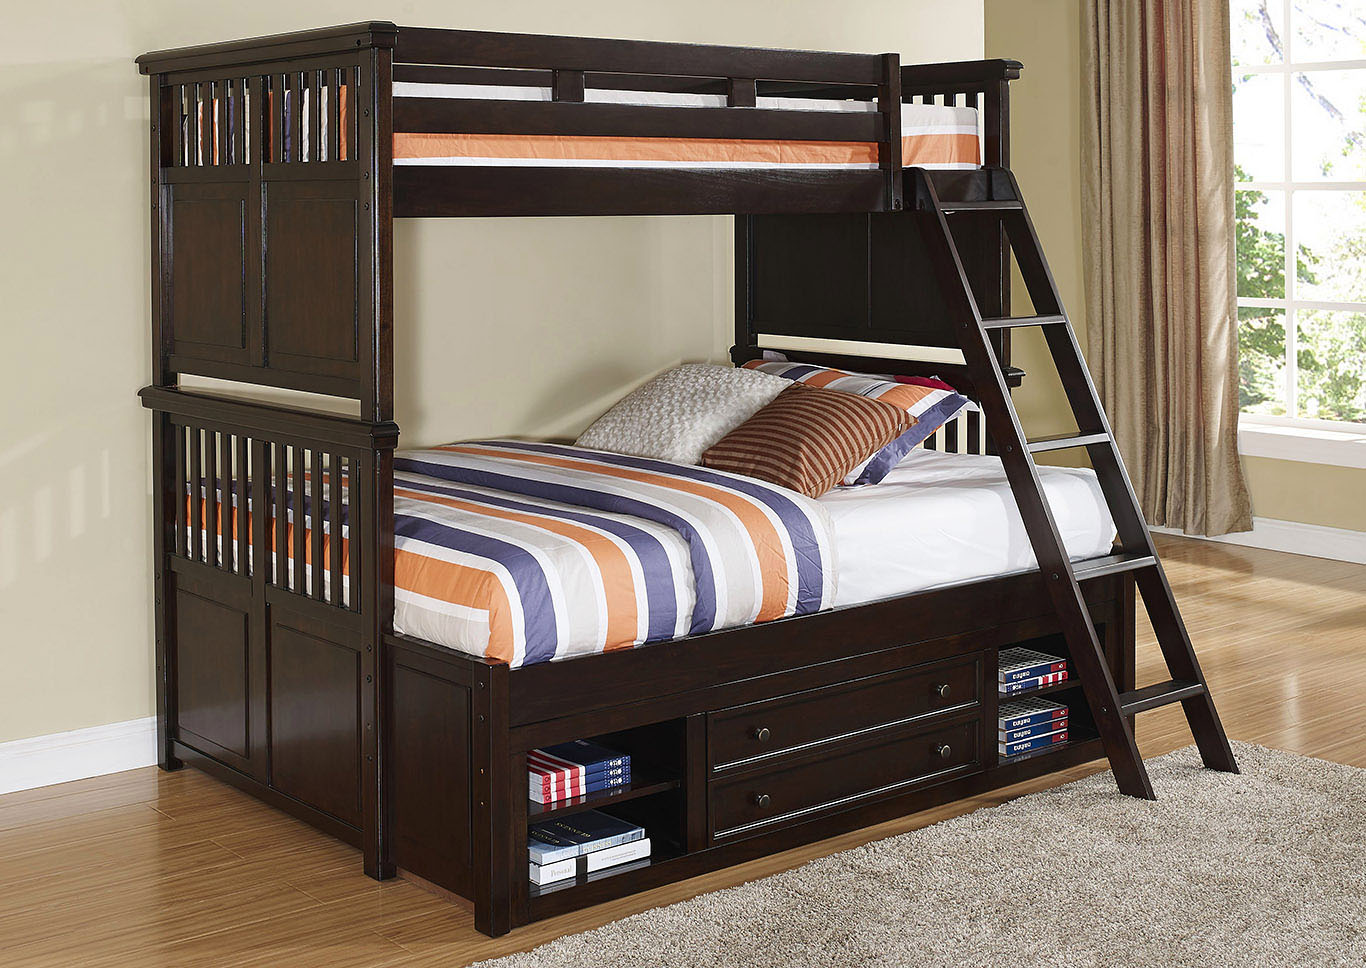 Canyon Ridge Chestnut Twin/Full Storage Bunk Bed w/Dresser and Mirror,New Classic